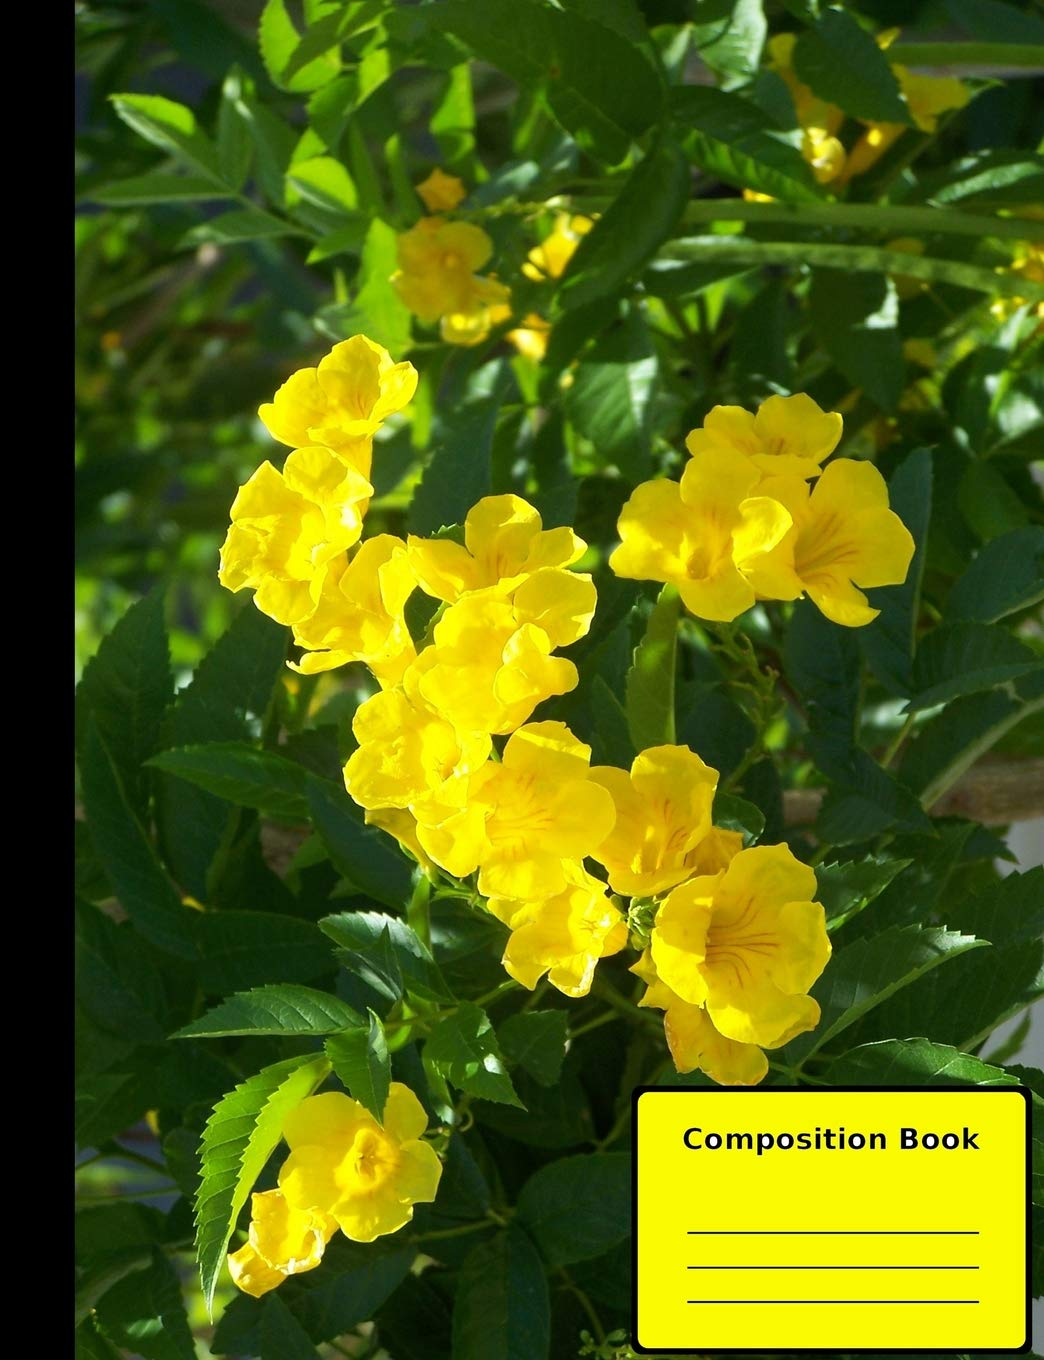 "Cats Claw Vine Composition Notebook, Wide Ruled: 100 sheets / 200 pages, 9-3/4"" x 7-1/2"" pdf epub"